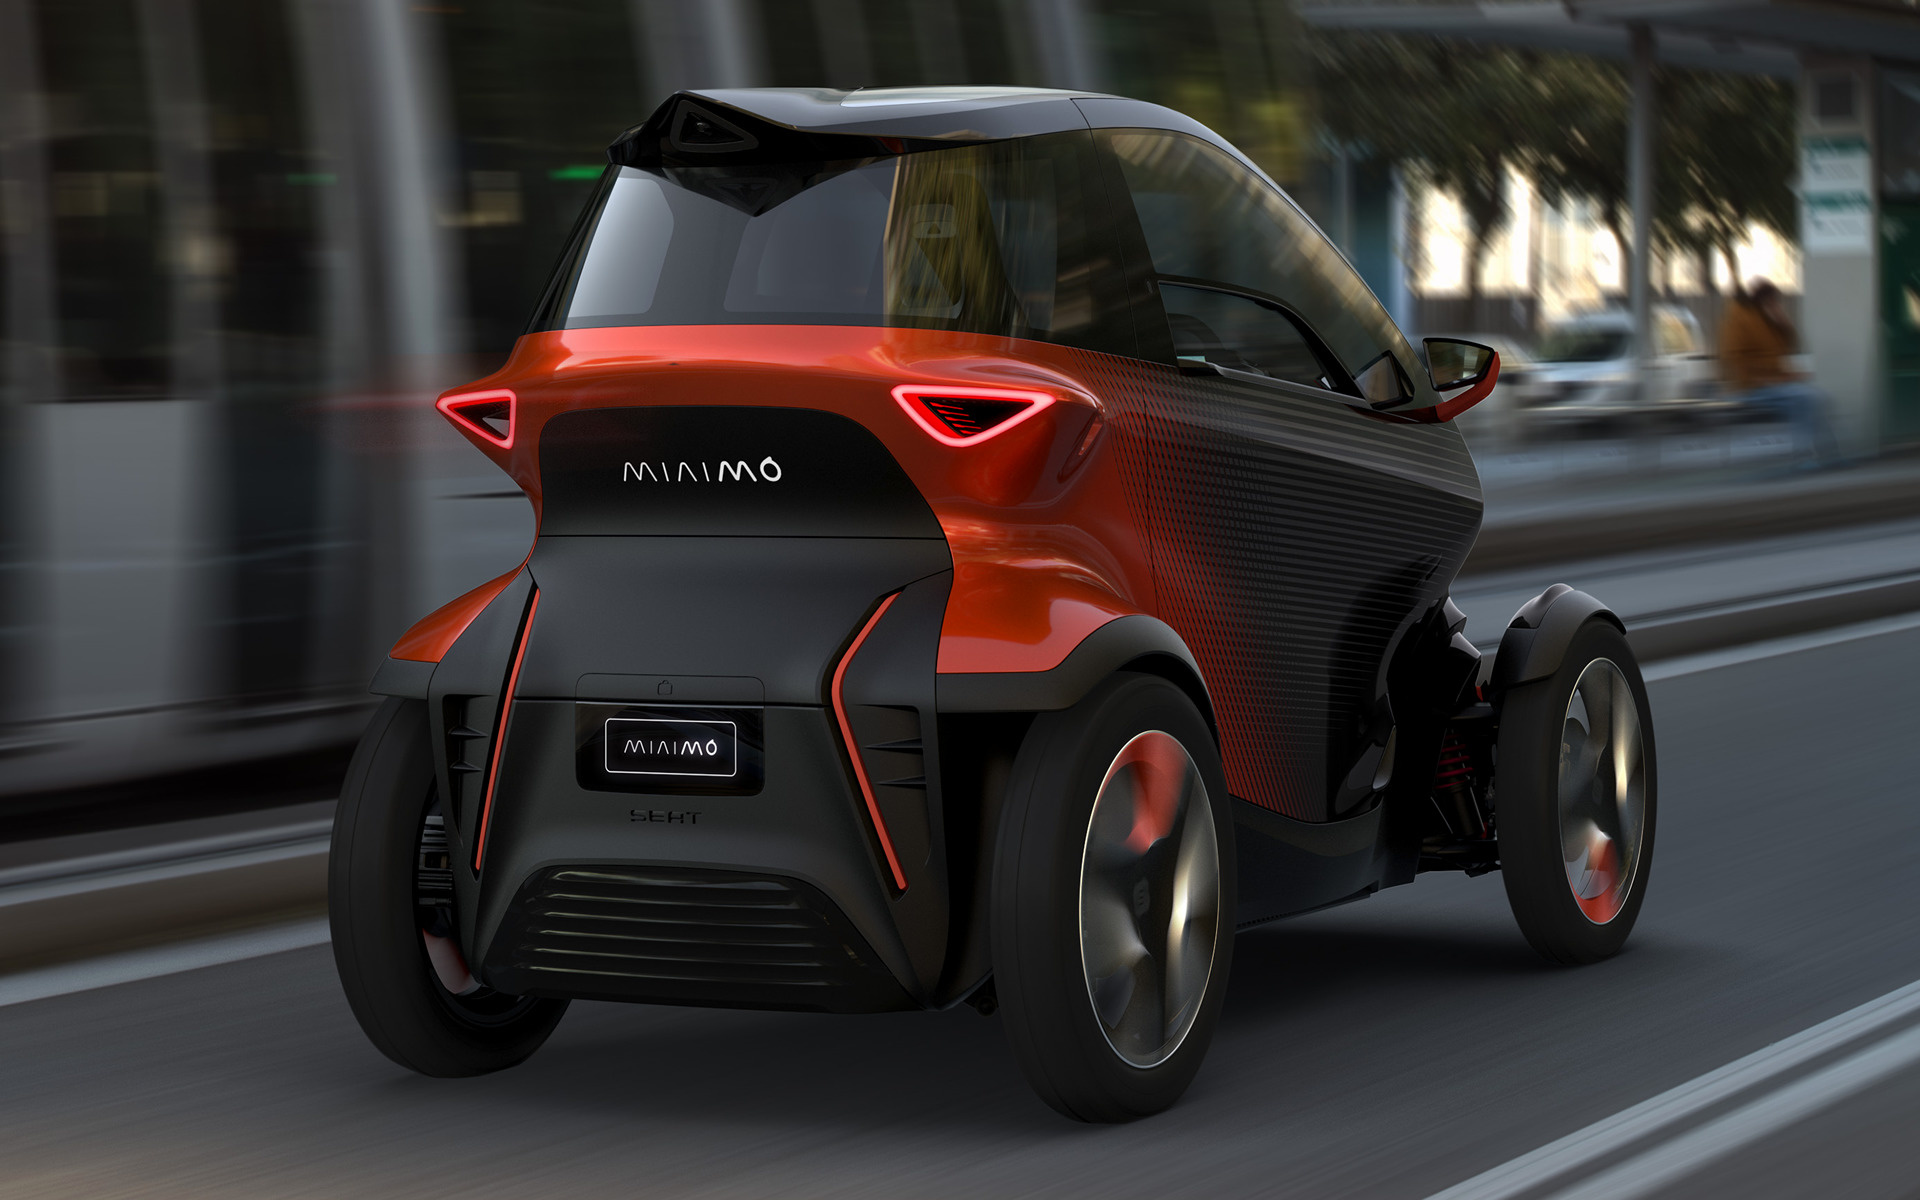 2019 Seat Minimo Concept - Wallpapers and HD Images | Car ...